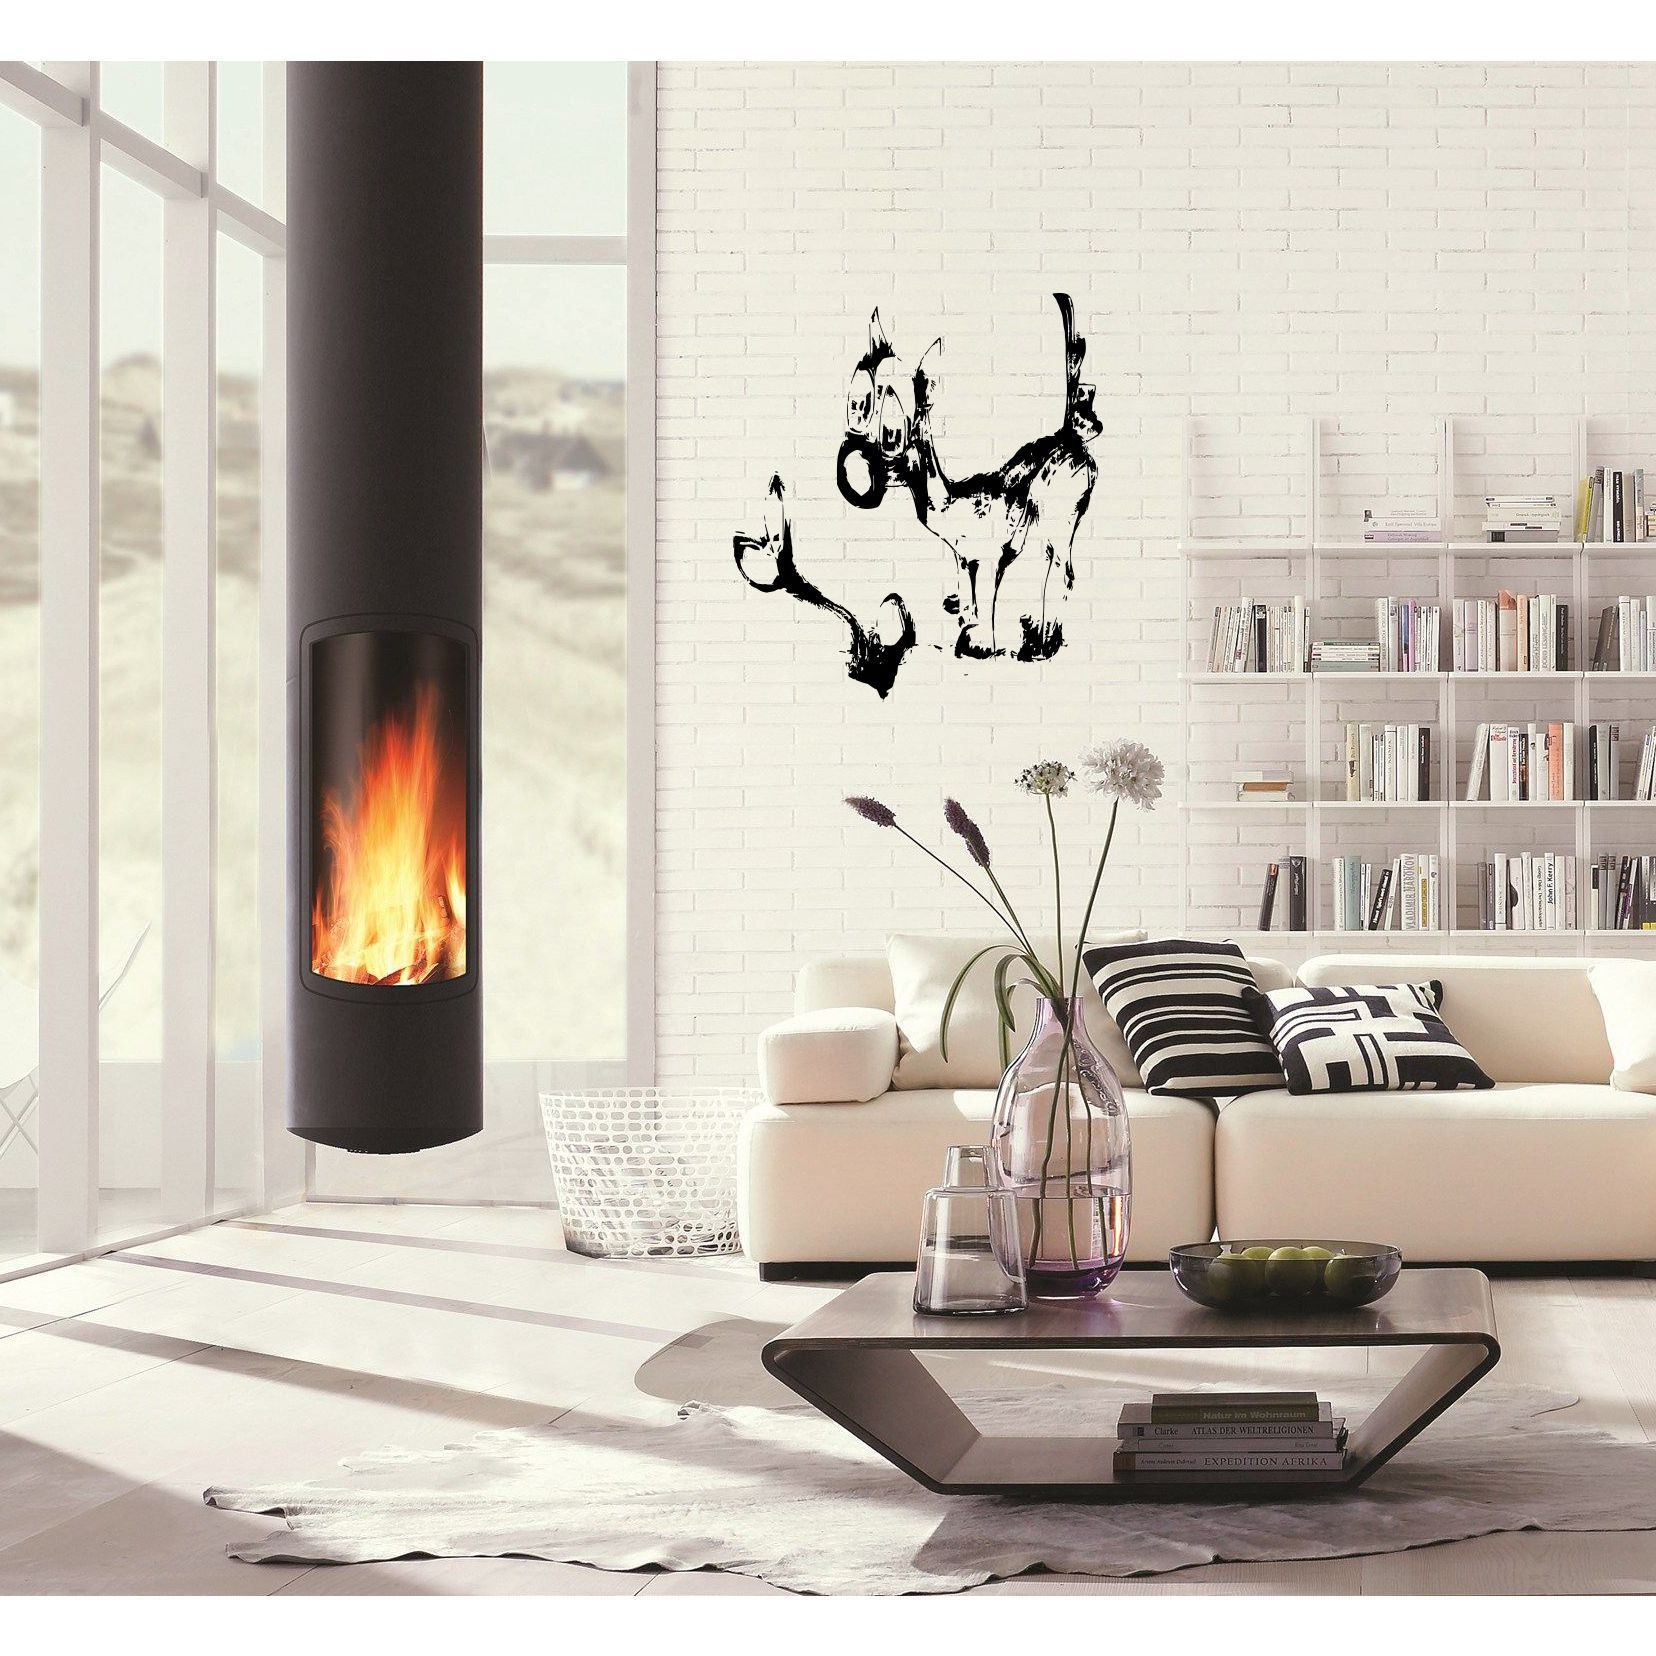 Fireplace Decal Funny Dog With A Bone Wall Art Sticker Decal Products